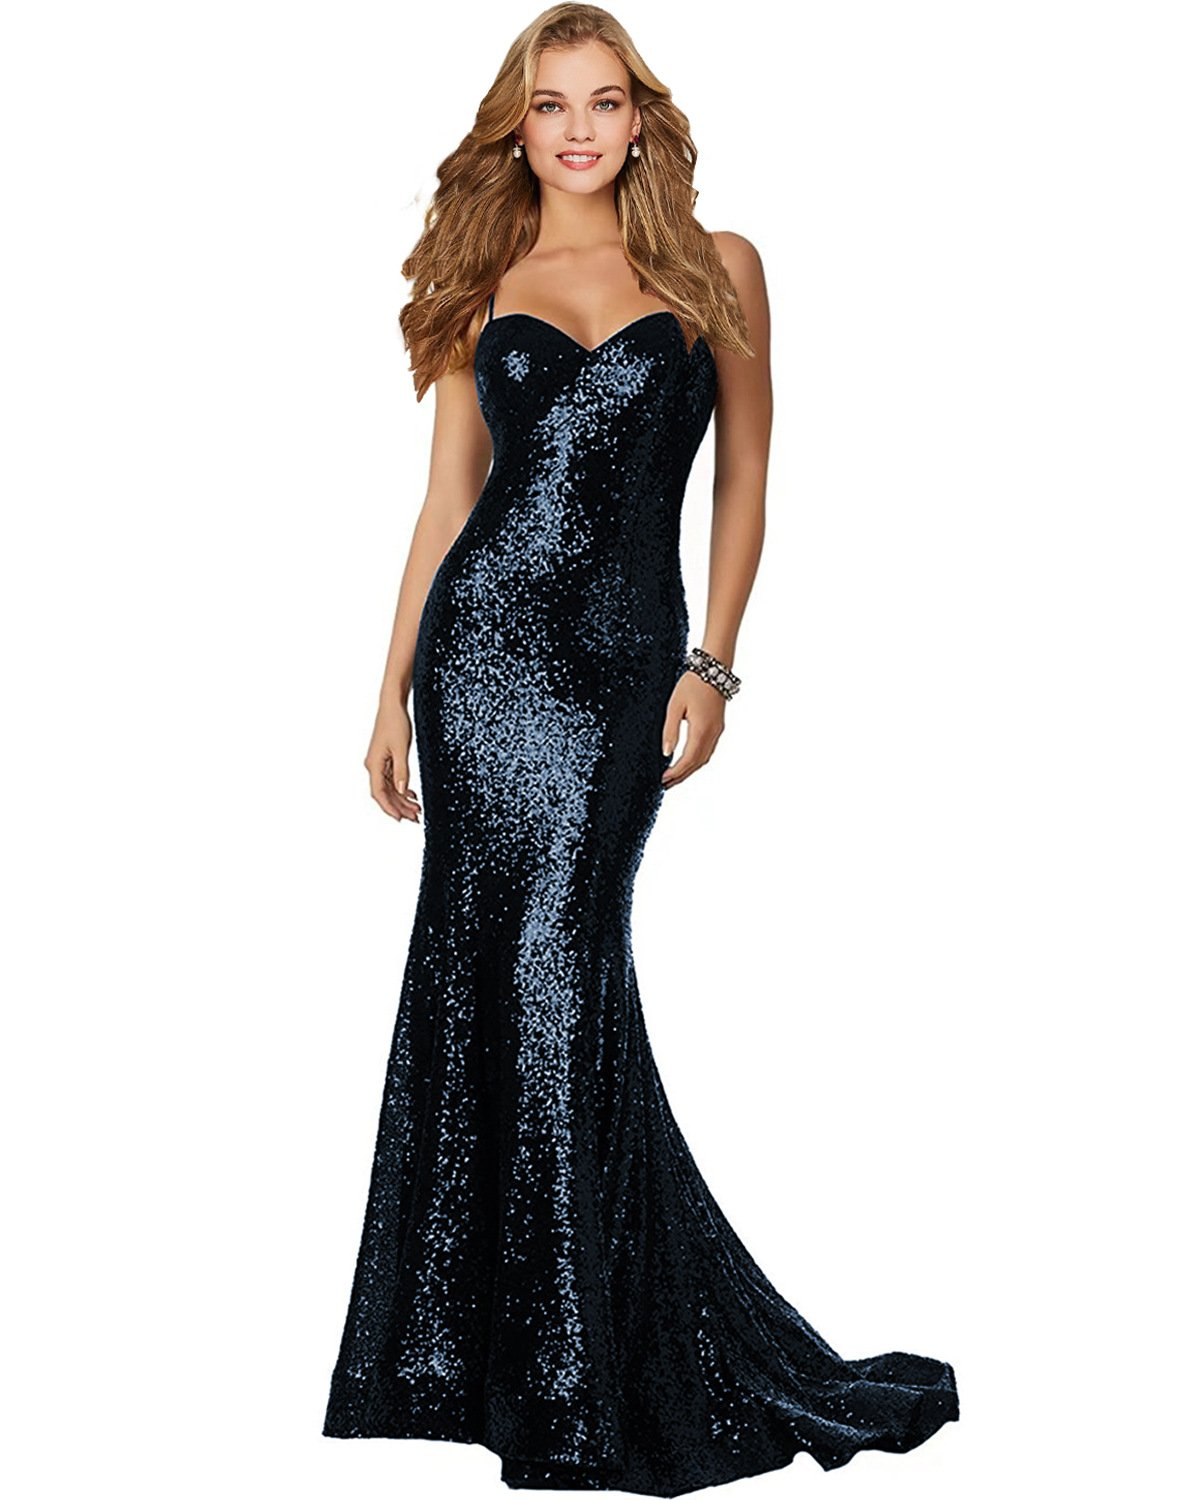 a3ca0fe5bb26 Lily Wedding Womens Sexy Sequined Mermaid Prom Dresses 2018 Long Formal  Evening Party Gowns P186 Size 14 Navy Blue .